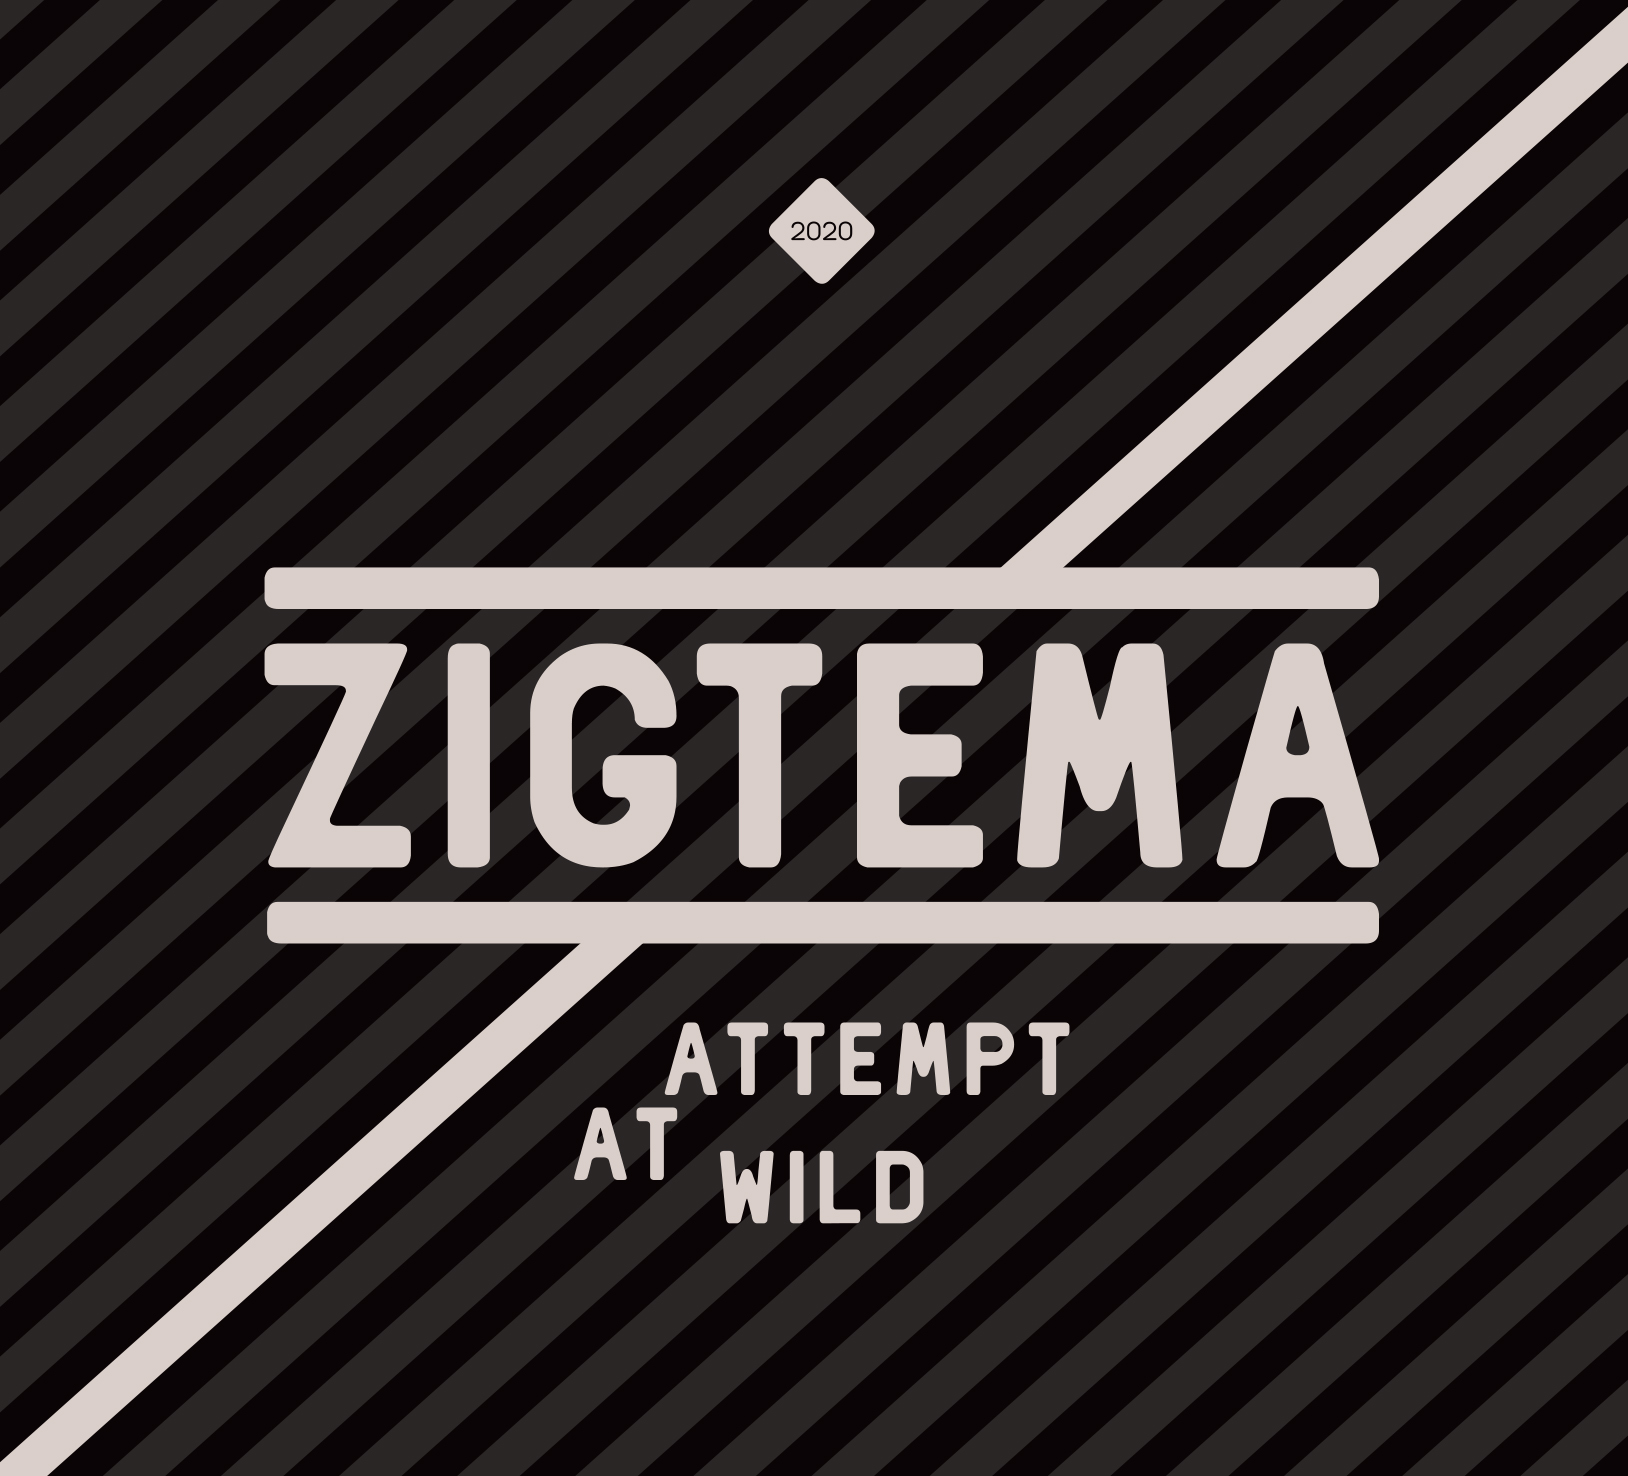 Zigtema - Attempt At Wild